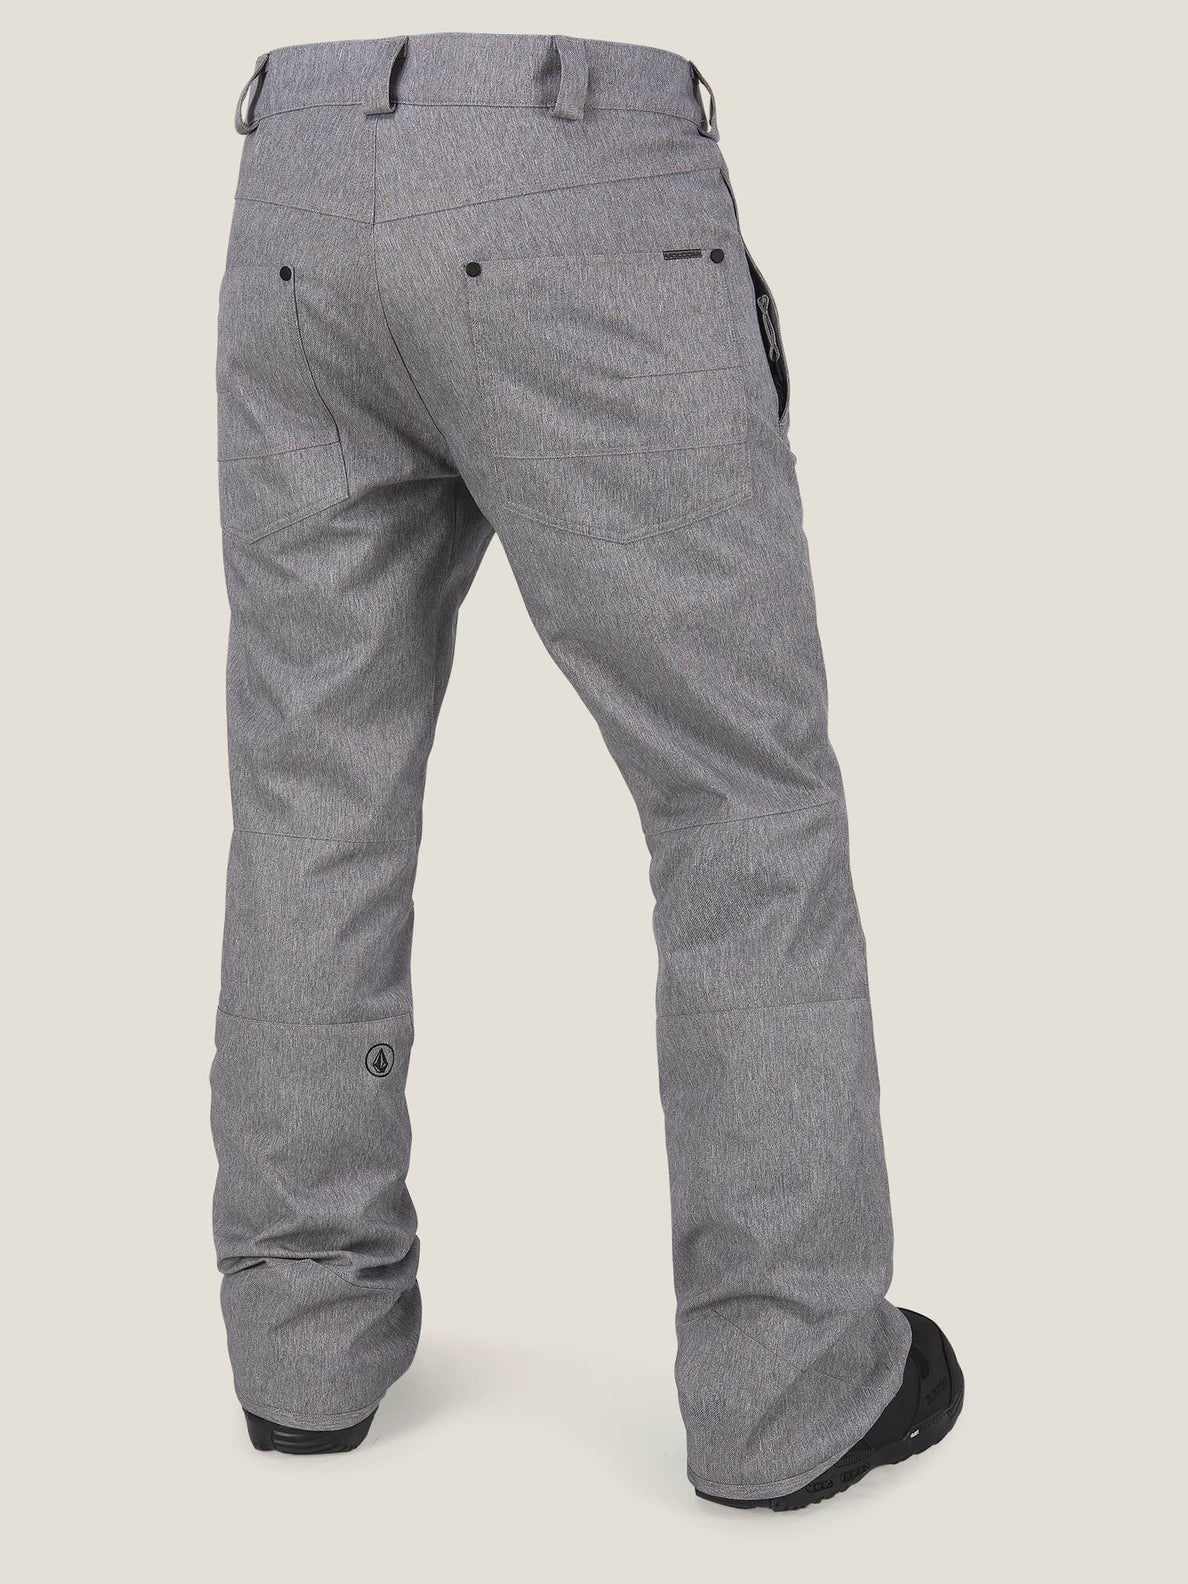 Klocker Tight Pant In Heather Grey, Back View